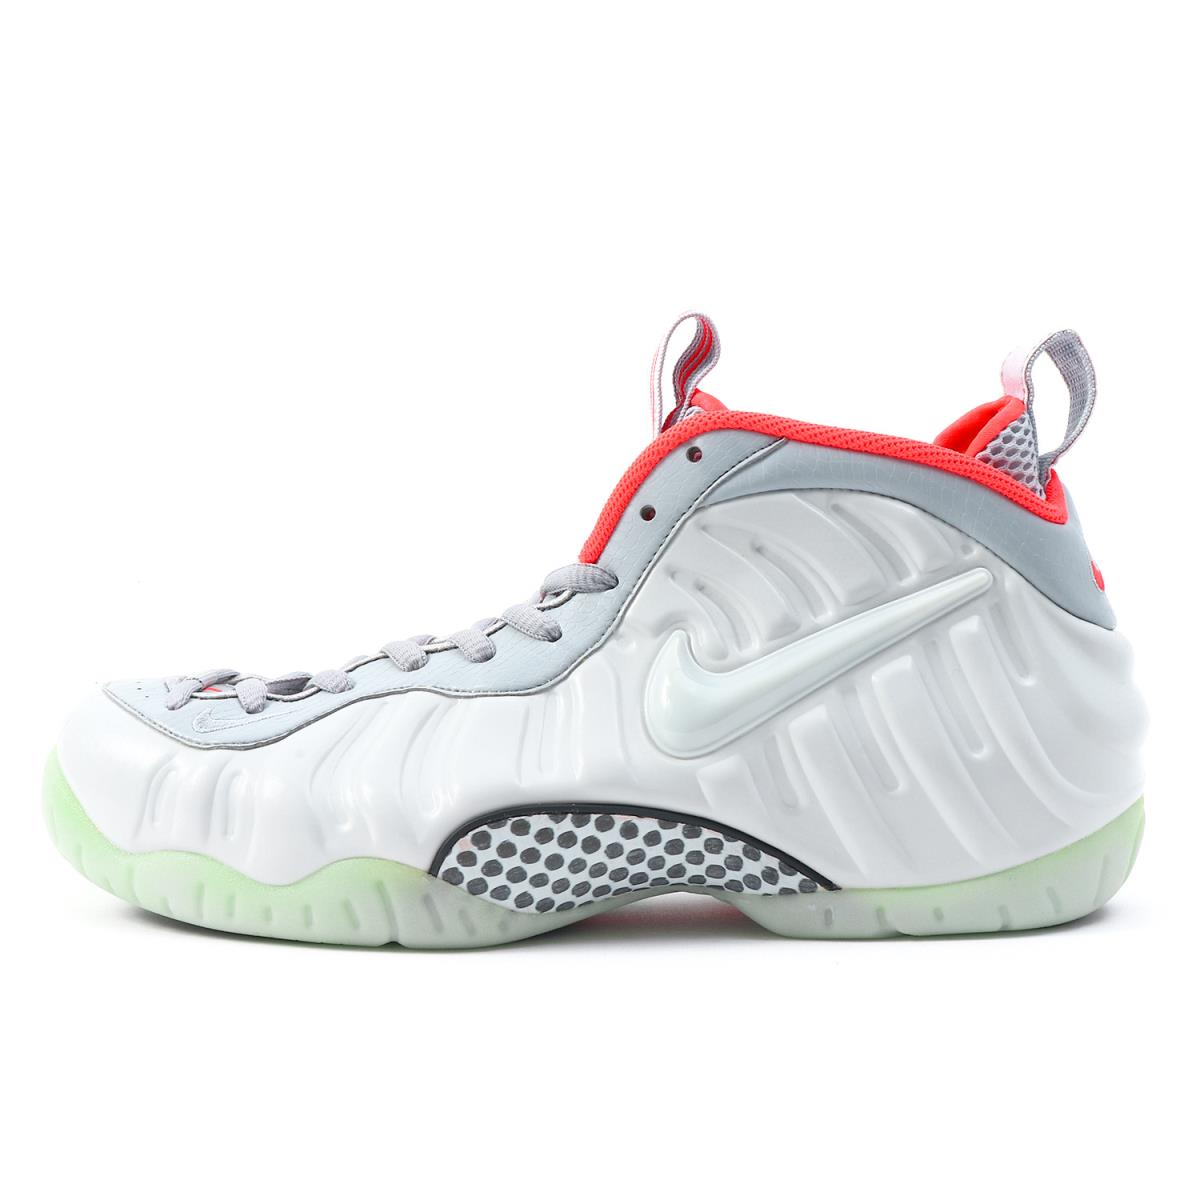 534f58385e534 BEEGLE by Boo-Bee  NIKE (Nike) AIR FOAMPOSITE PRO PURE PLATINUM ...